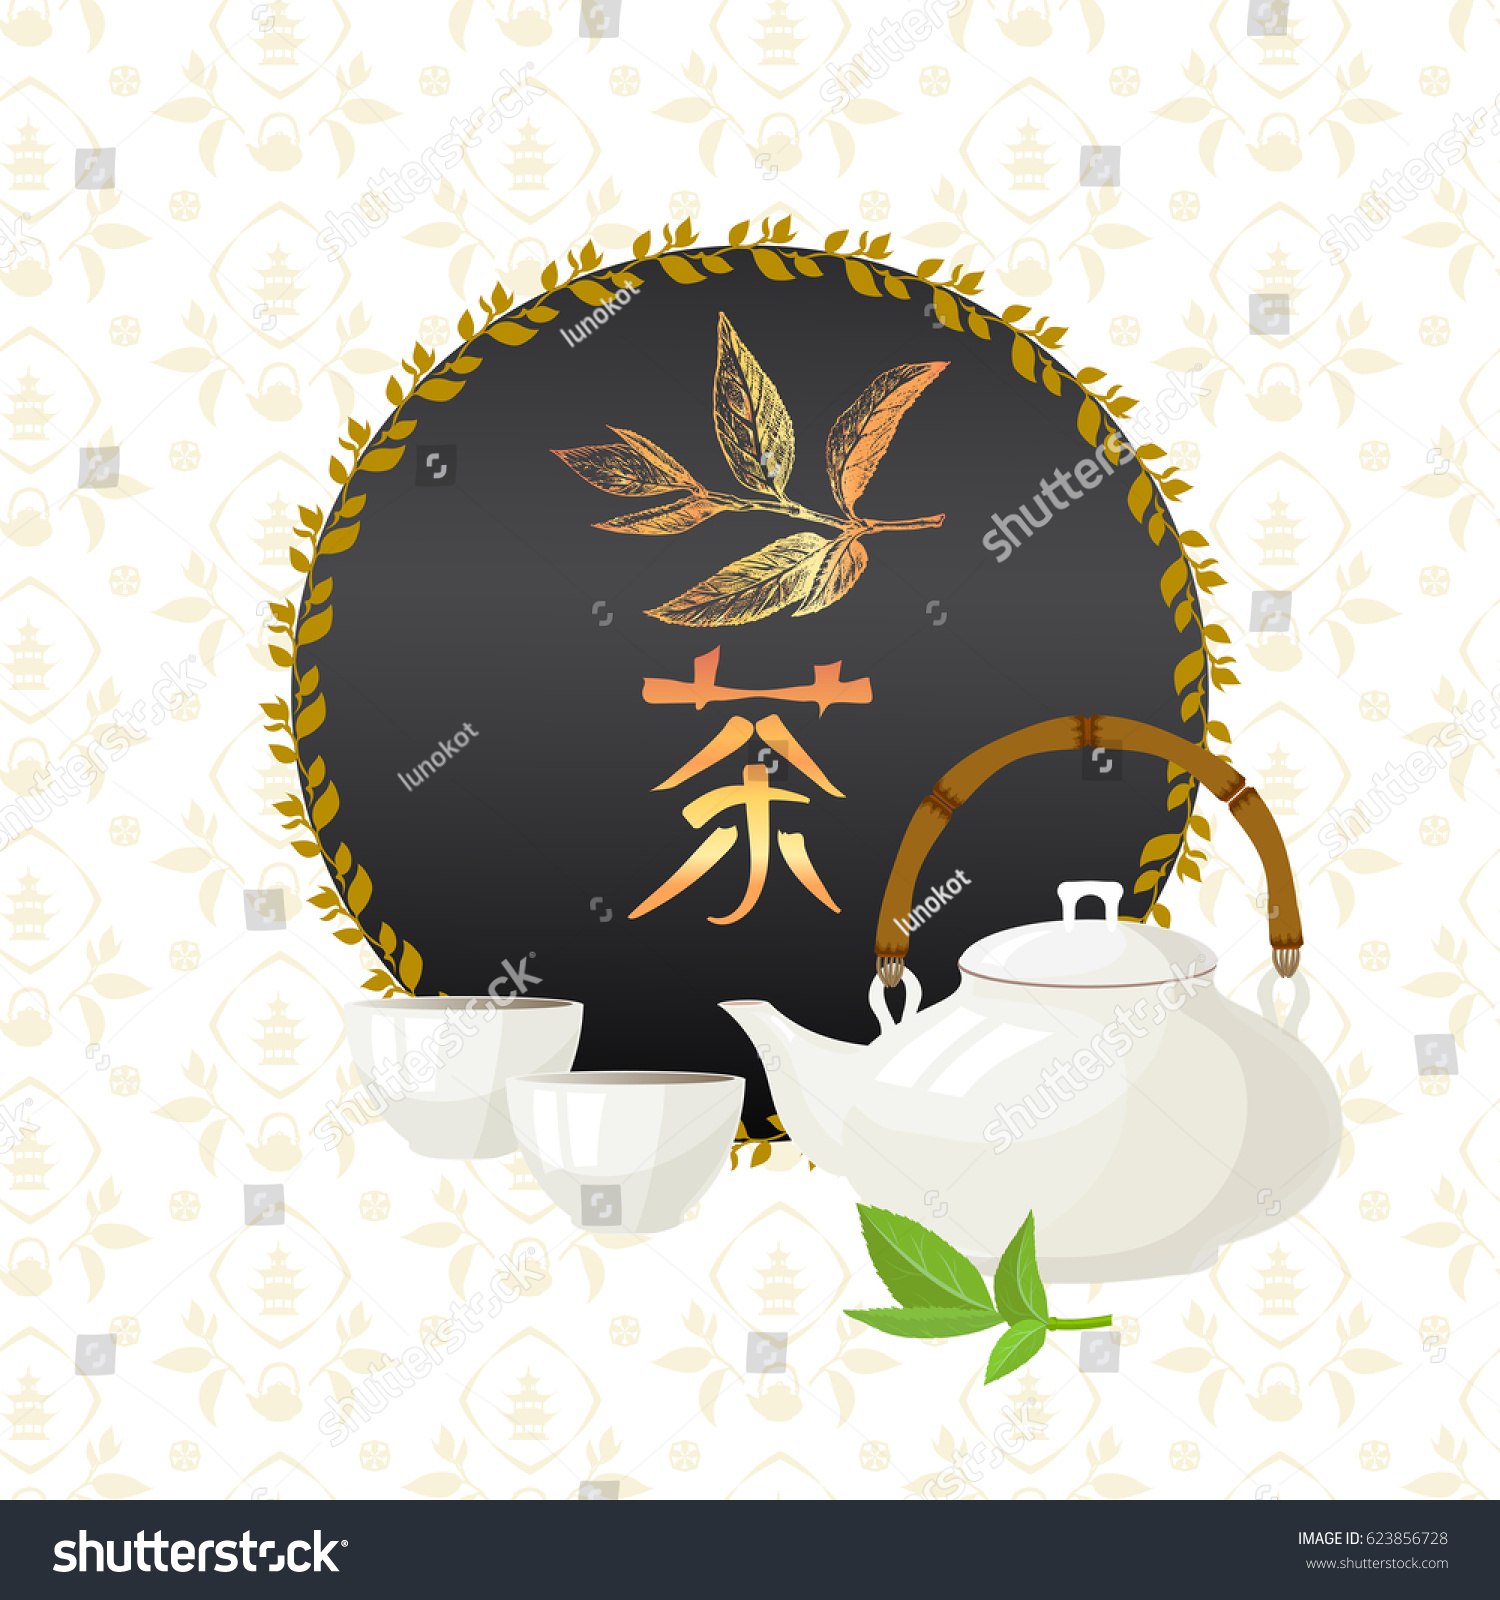 Tea Background Can Be Used Design Stock Vector 623856728 Shutterstock